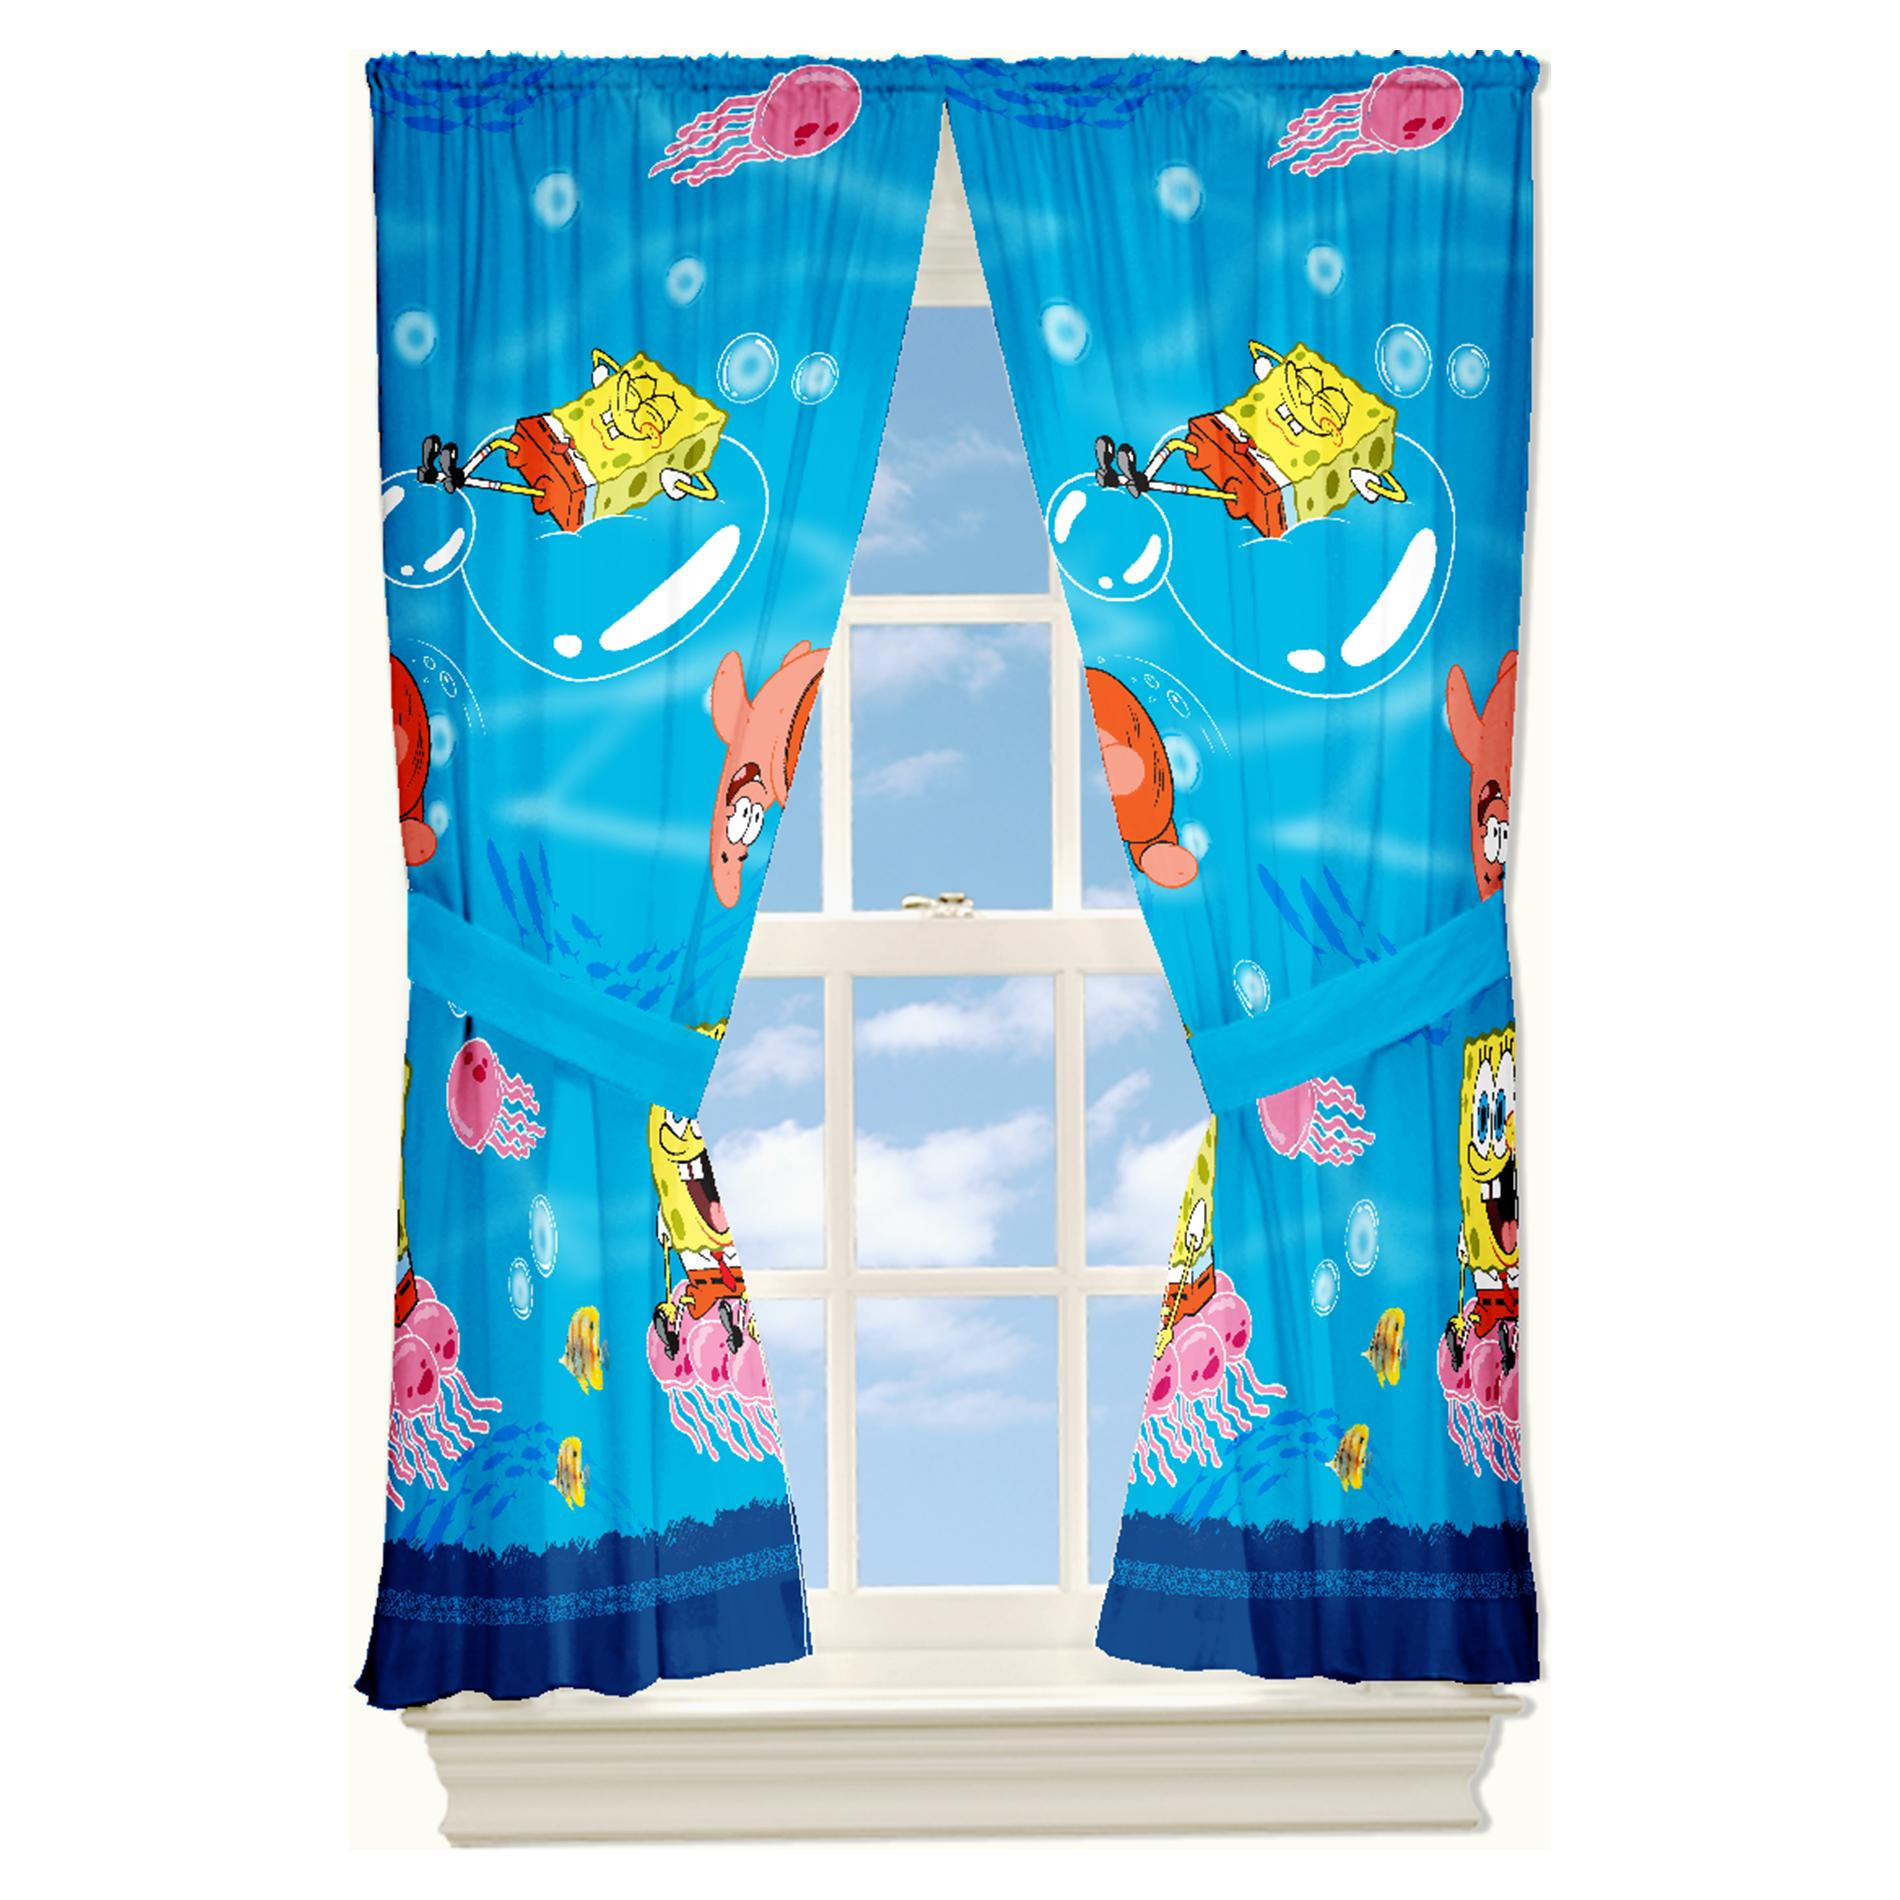 China Blue Curtains Spongebob Squarepants Bedroom Curtains